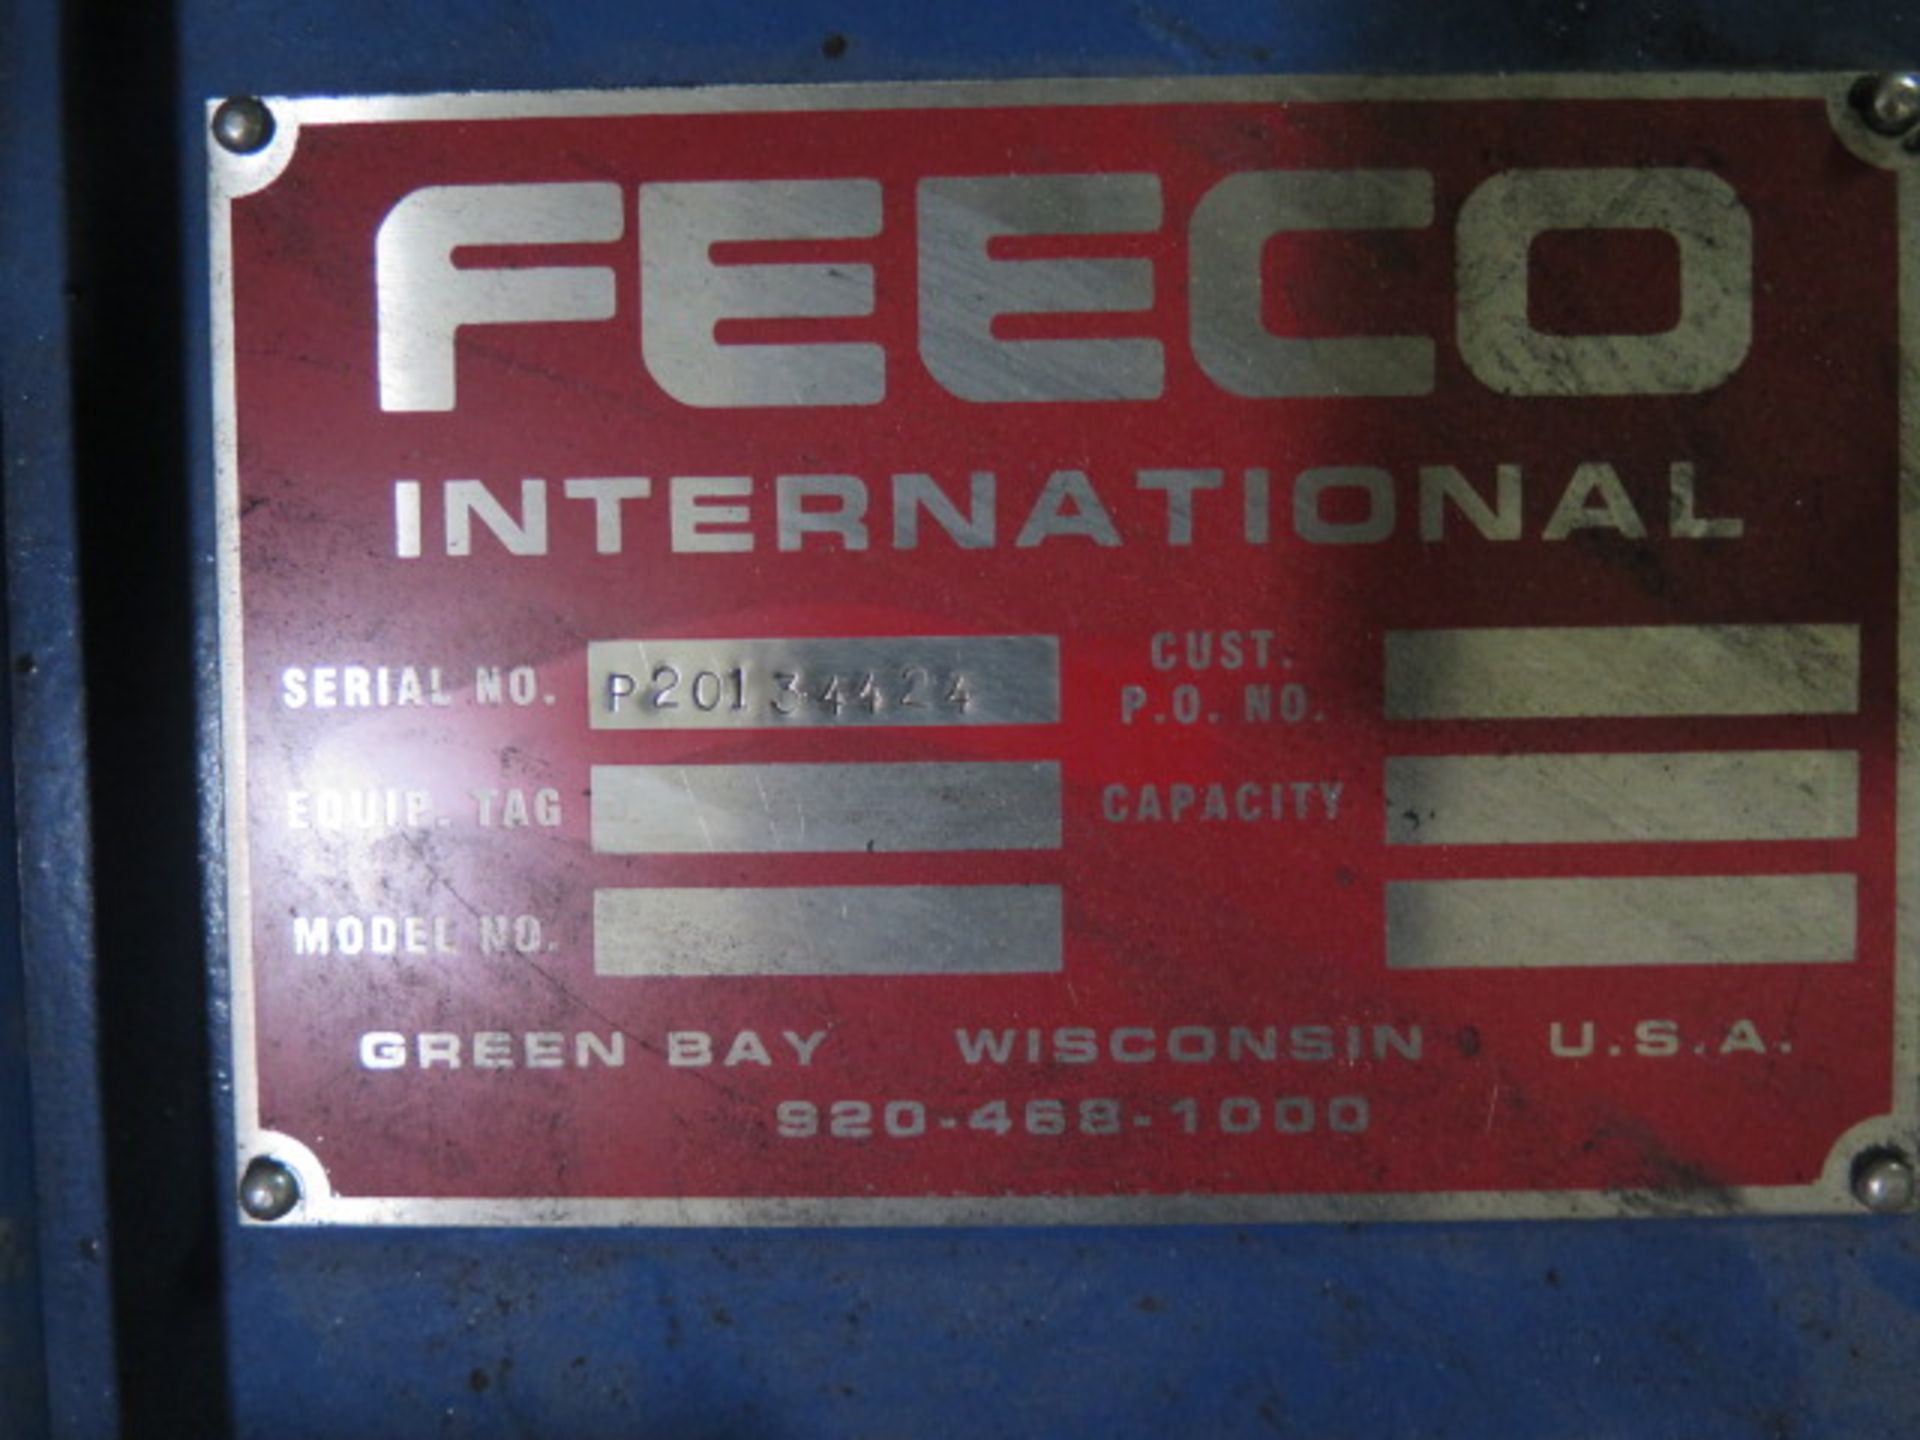 Lot 361 - Feeco International Pan Agglo-Miser (Pelletizer) s/n P20134424, SOLD AS IS AND W/ NO WARRANTY